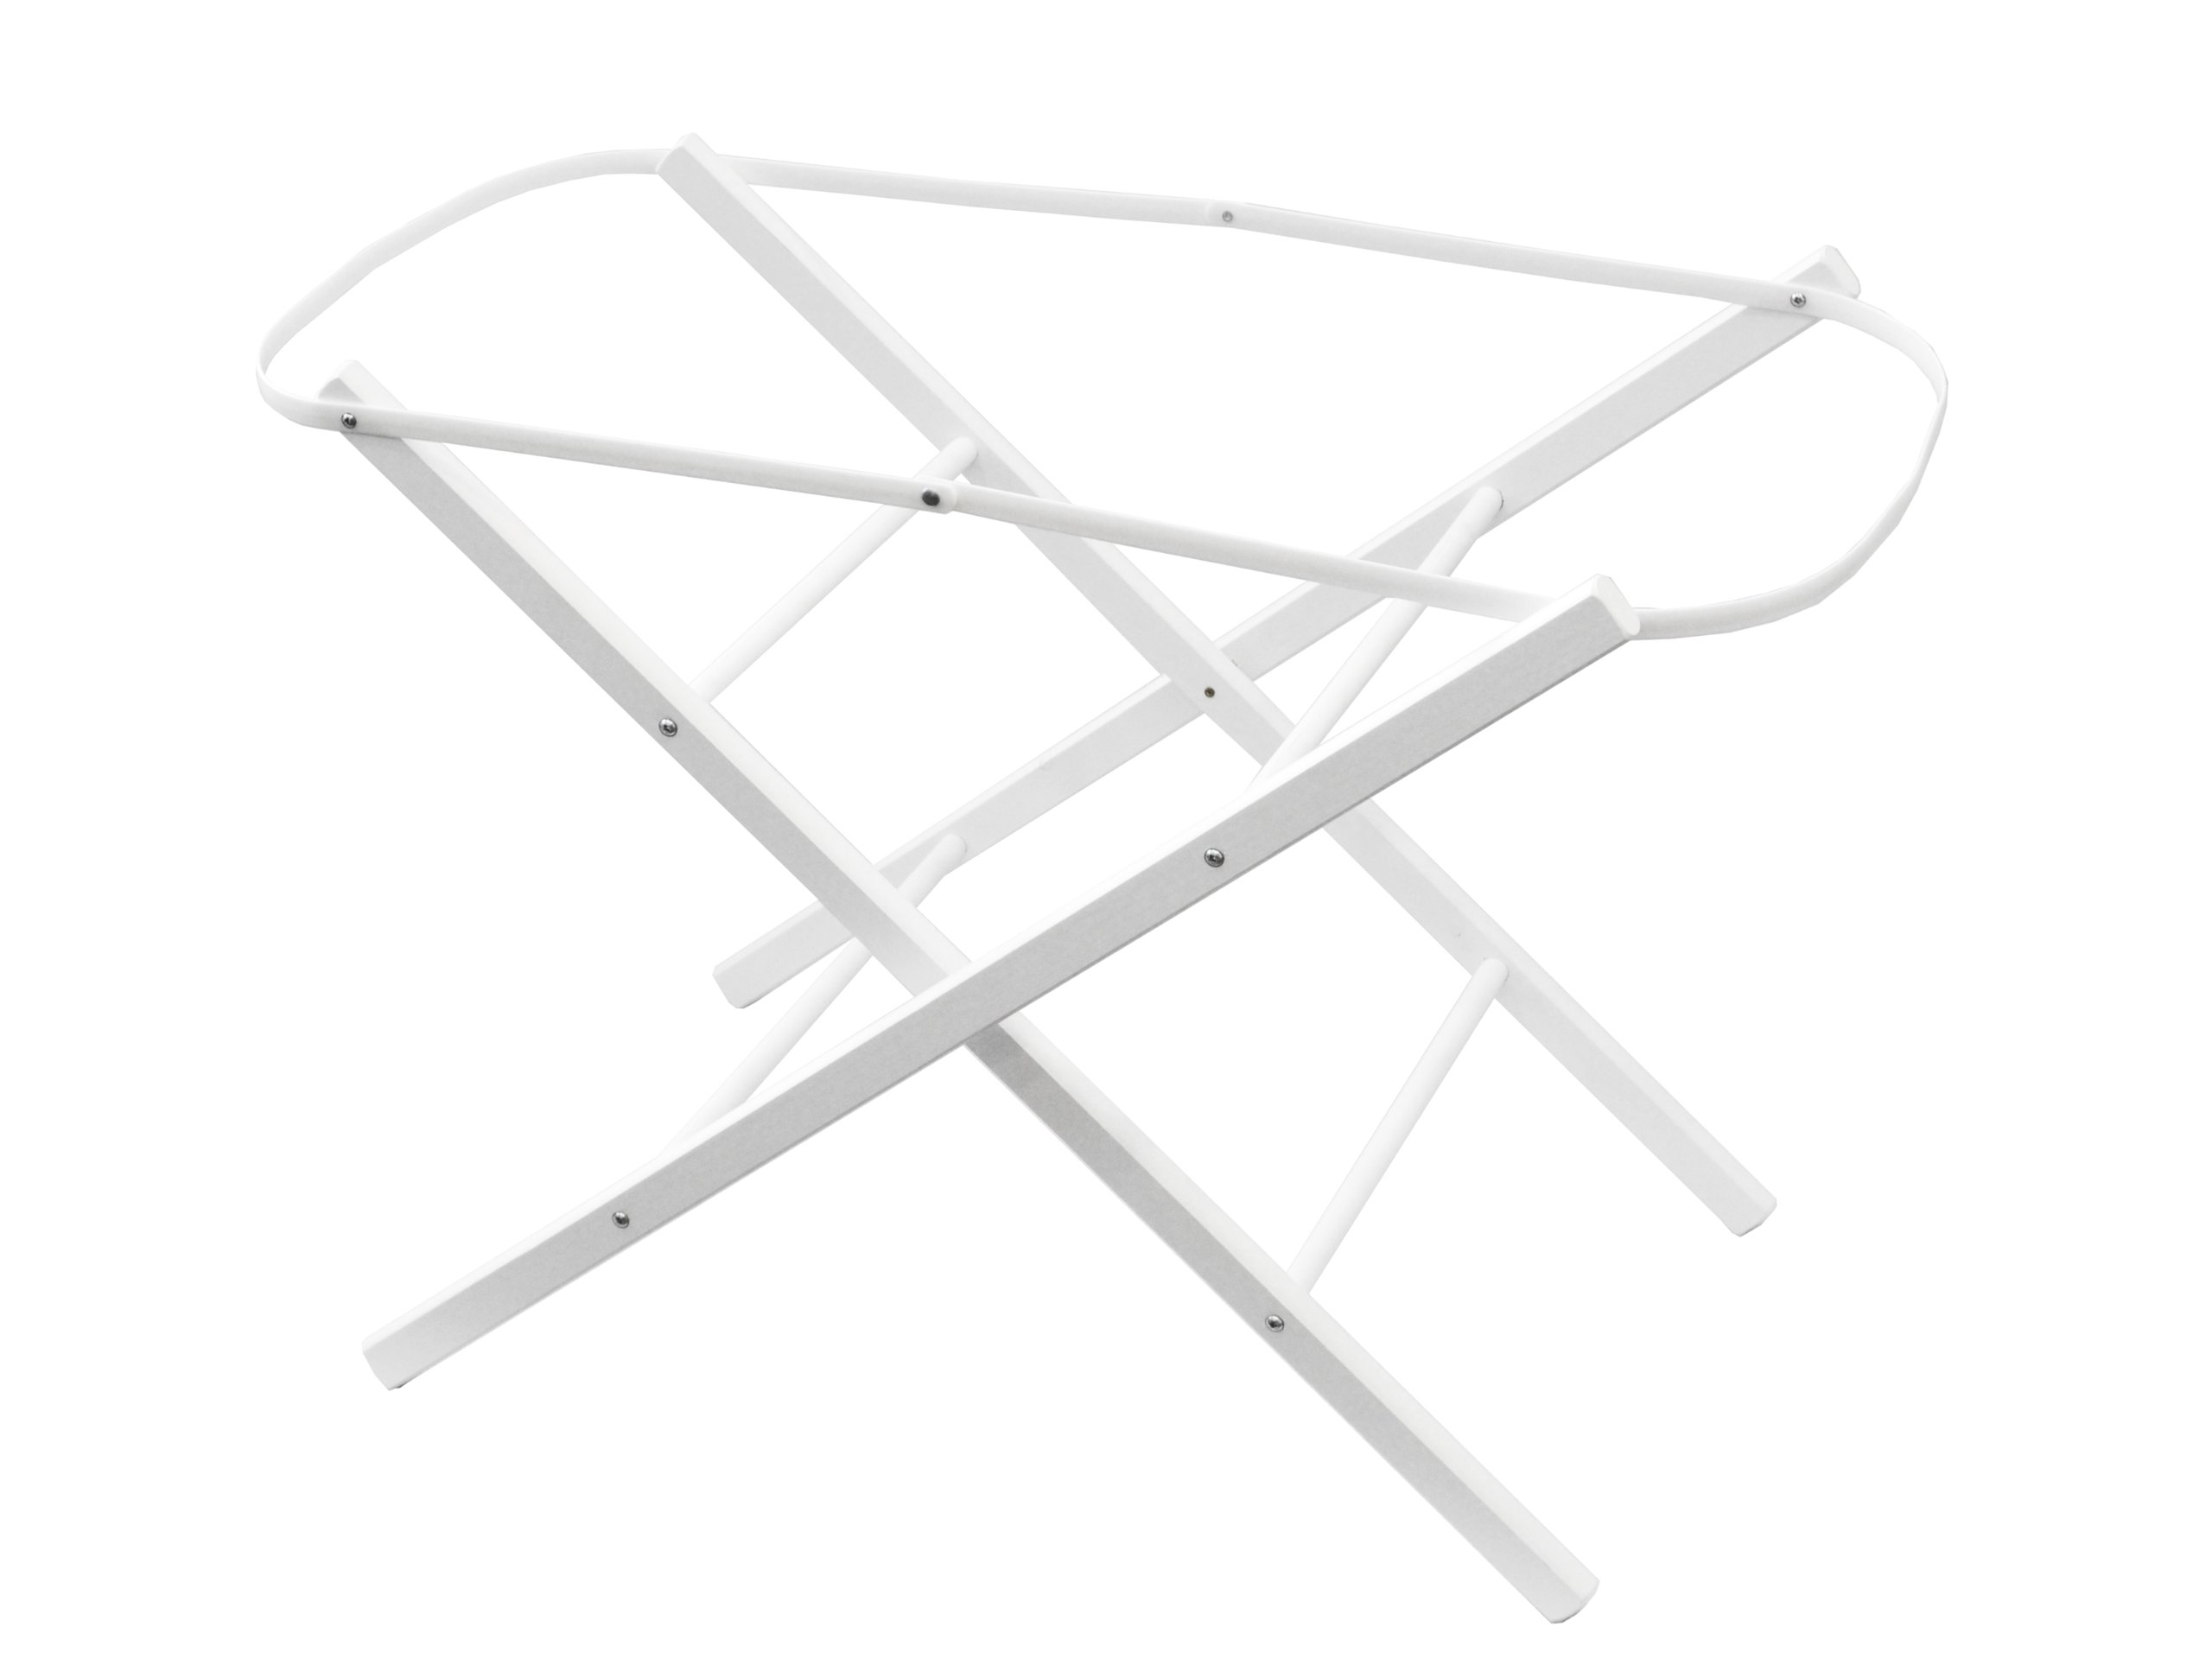 Shnuggle Moses Basket Folding Stand - White  Shnuggle Folding Stand in White Stable folding stand for moses baskets Made in the UK 1